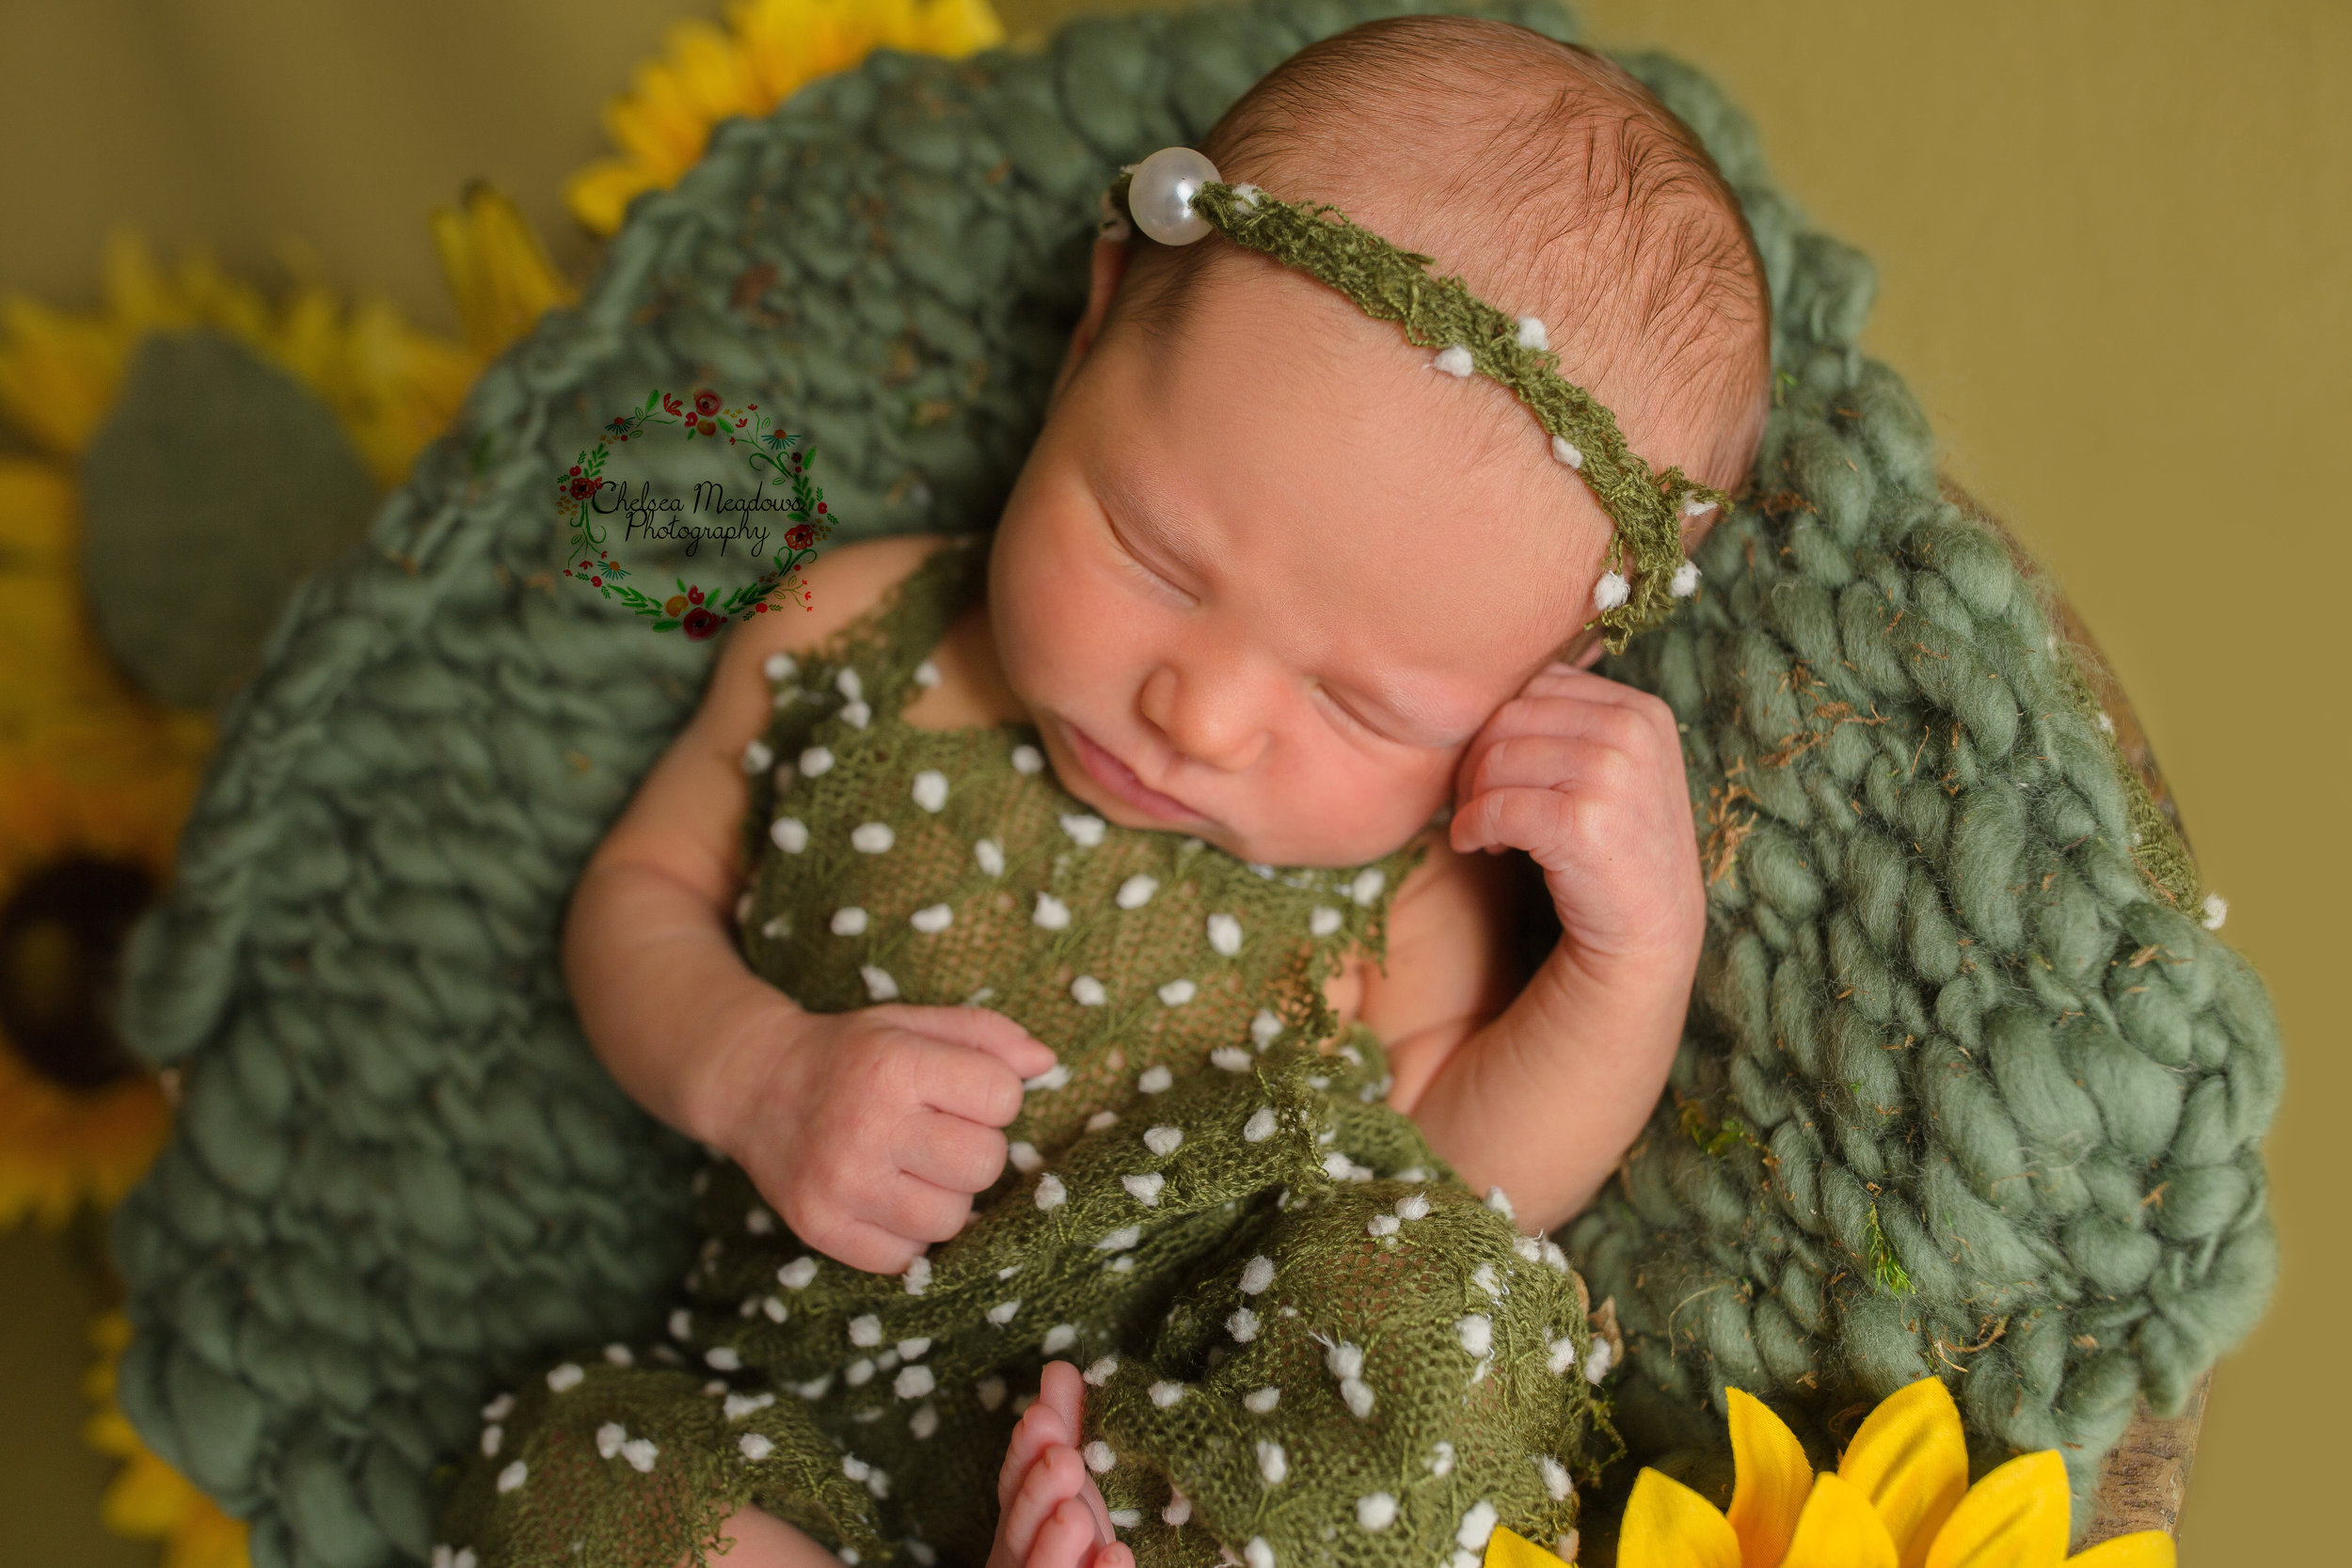 Sawyer Newborn Session - Nashville Newborn Photographer - Chelsea Meadows Photography (26).jpg